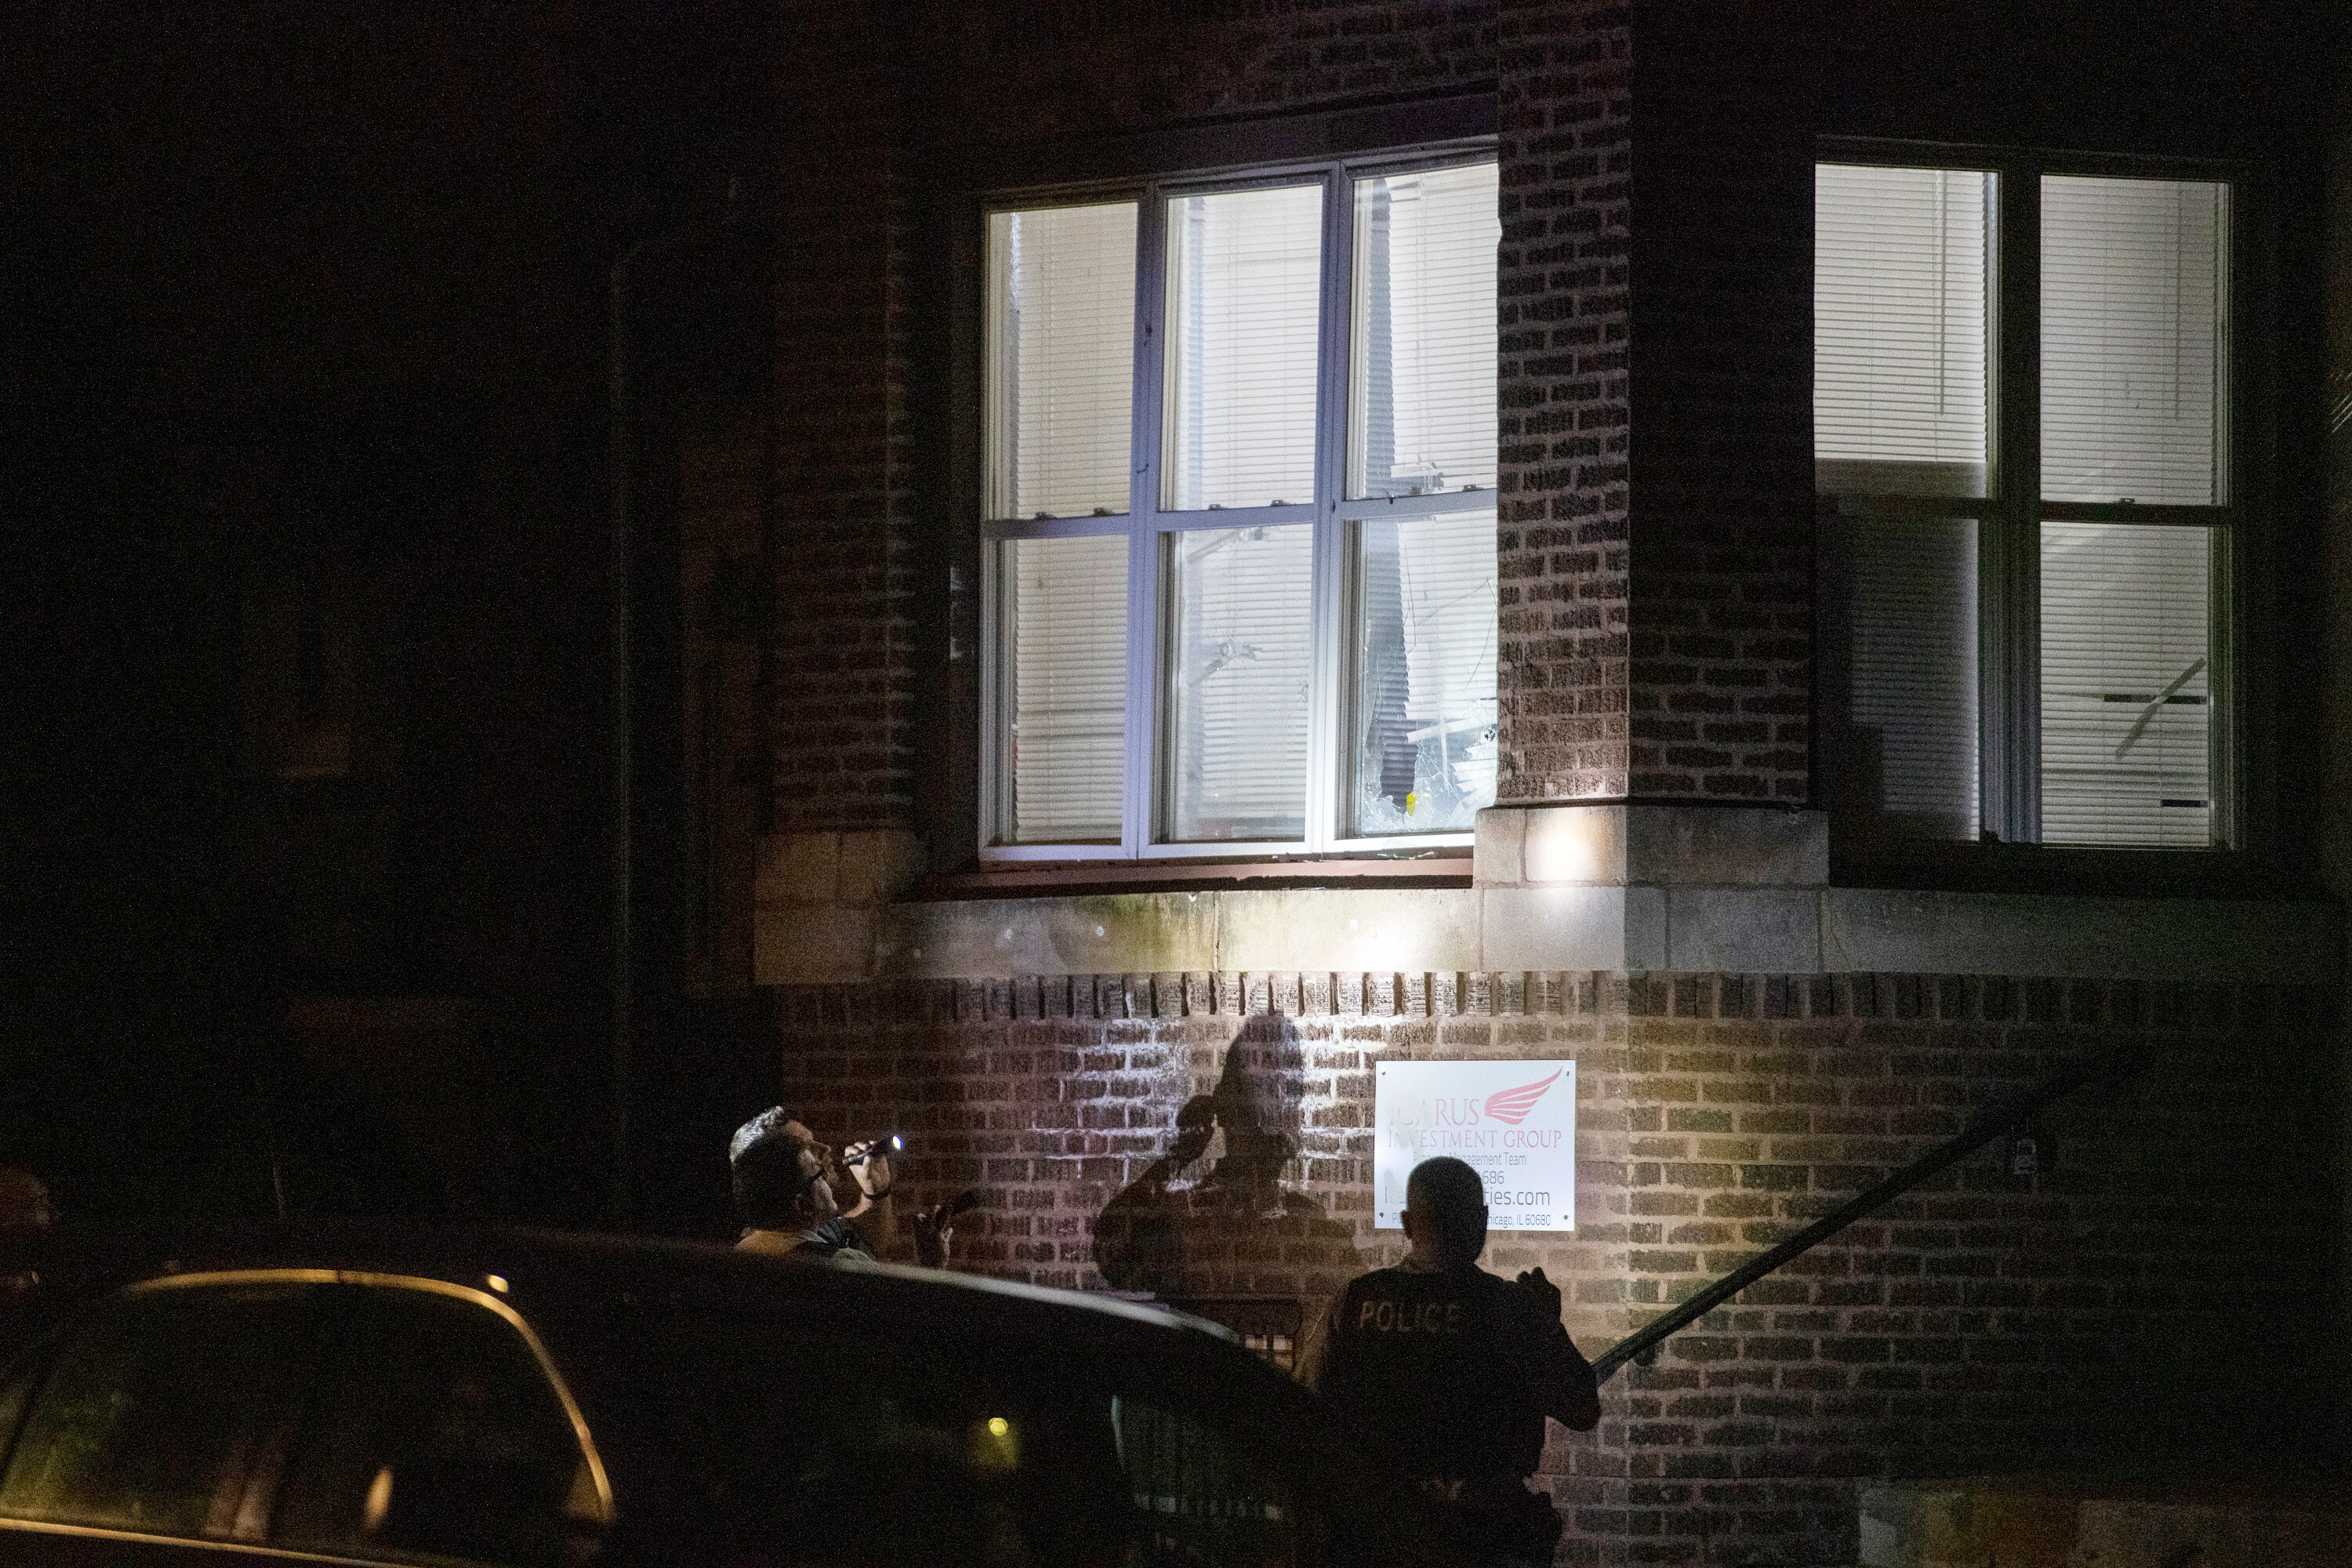 At least 8 children were shot, one fatally, over the weekend in Chicago